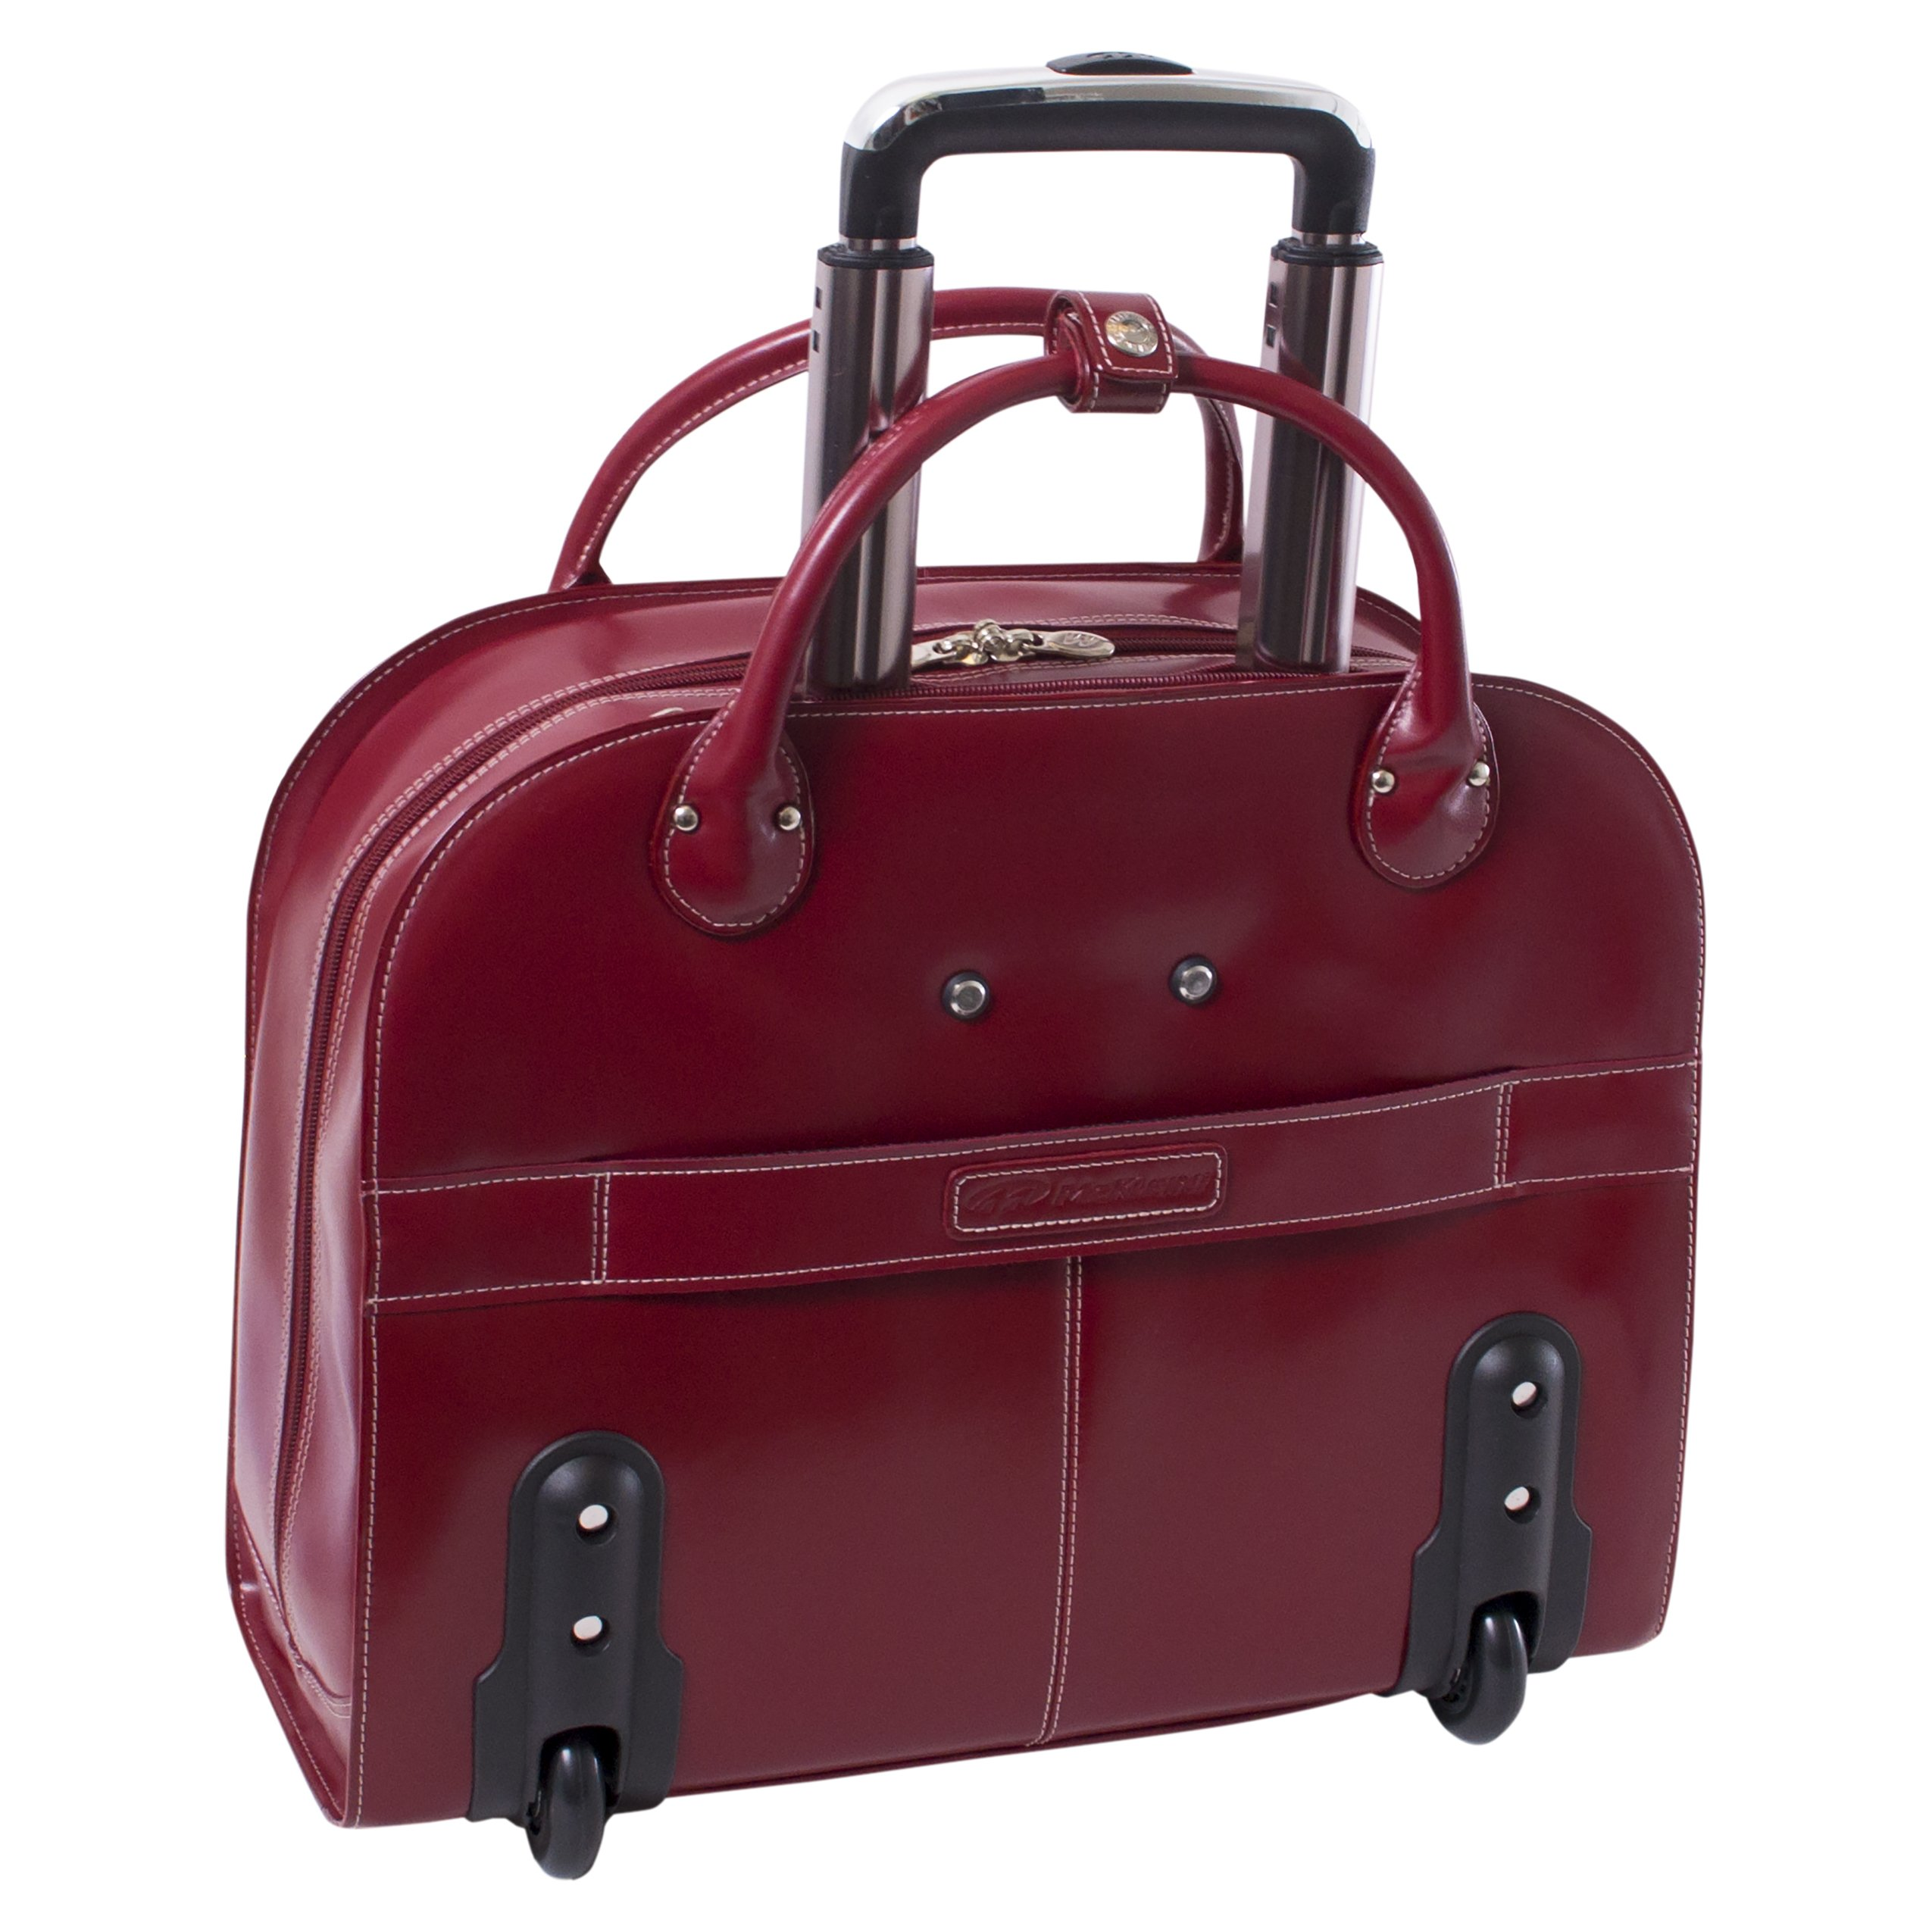 McKleinUSA Edgebrook [Personalized Initials Embossing] 15.4'' Leather Wheeled Ladies' Laptop Briefcase in Red by McKlein (Image #5)